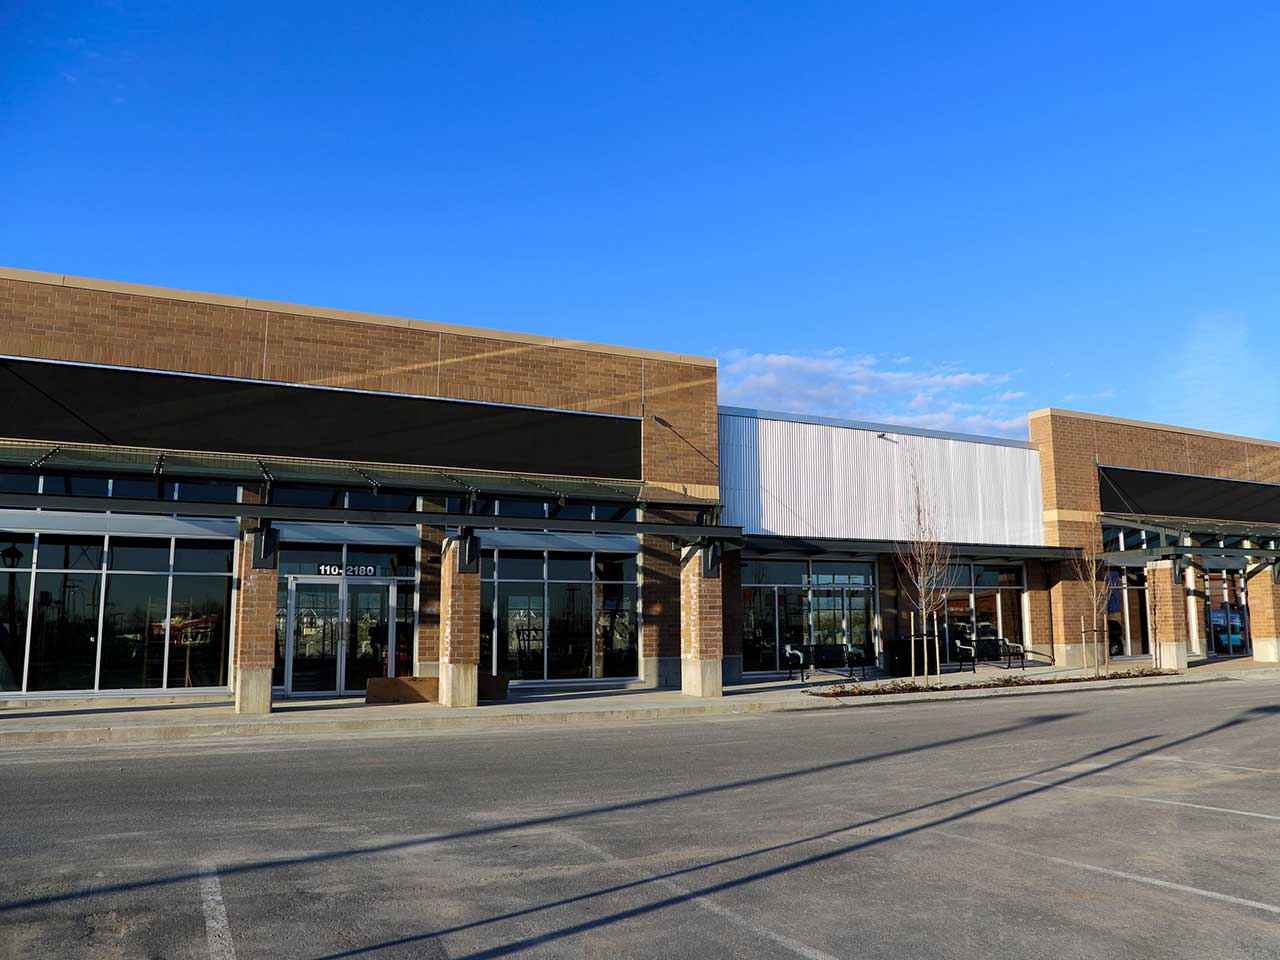 Commercial glass storefront in a new shopping center